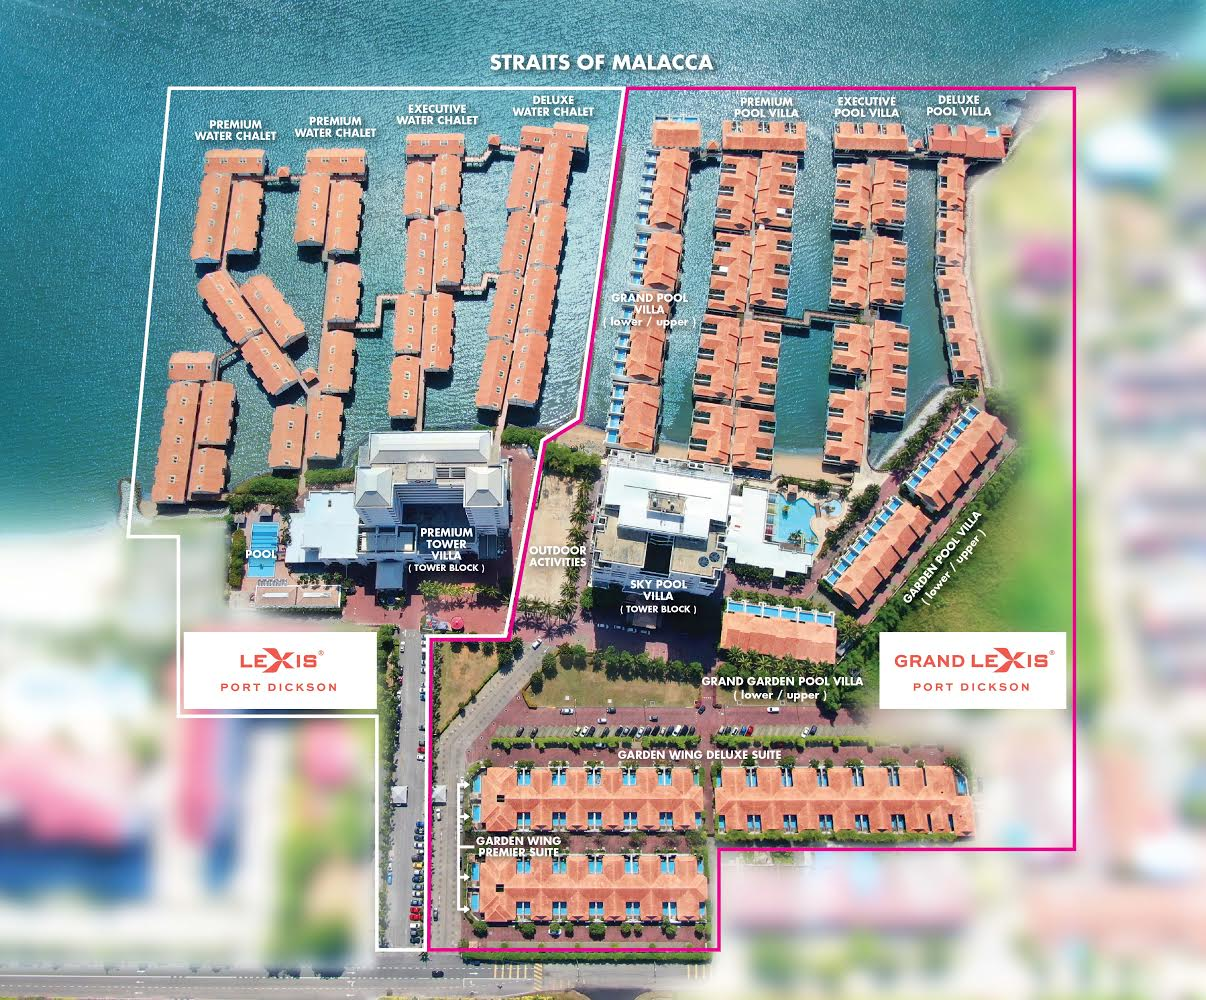 Grand Lexis Port Dickson Room Location Map